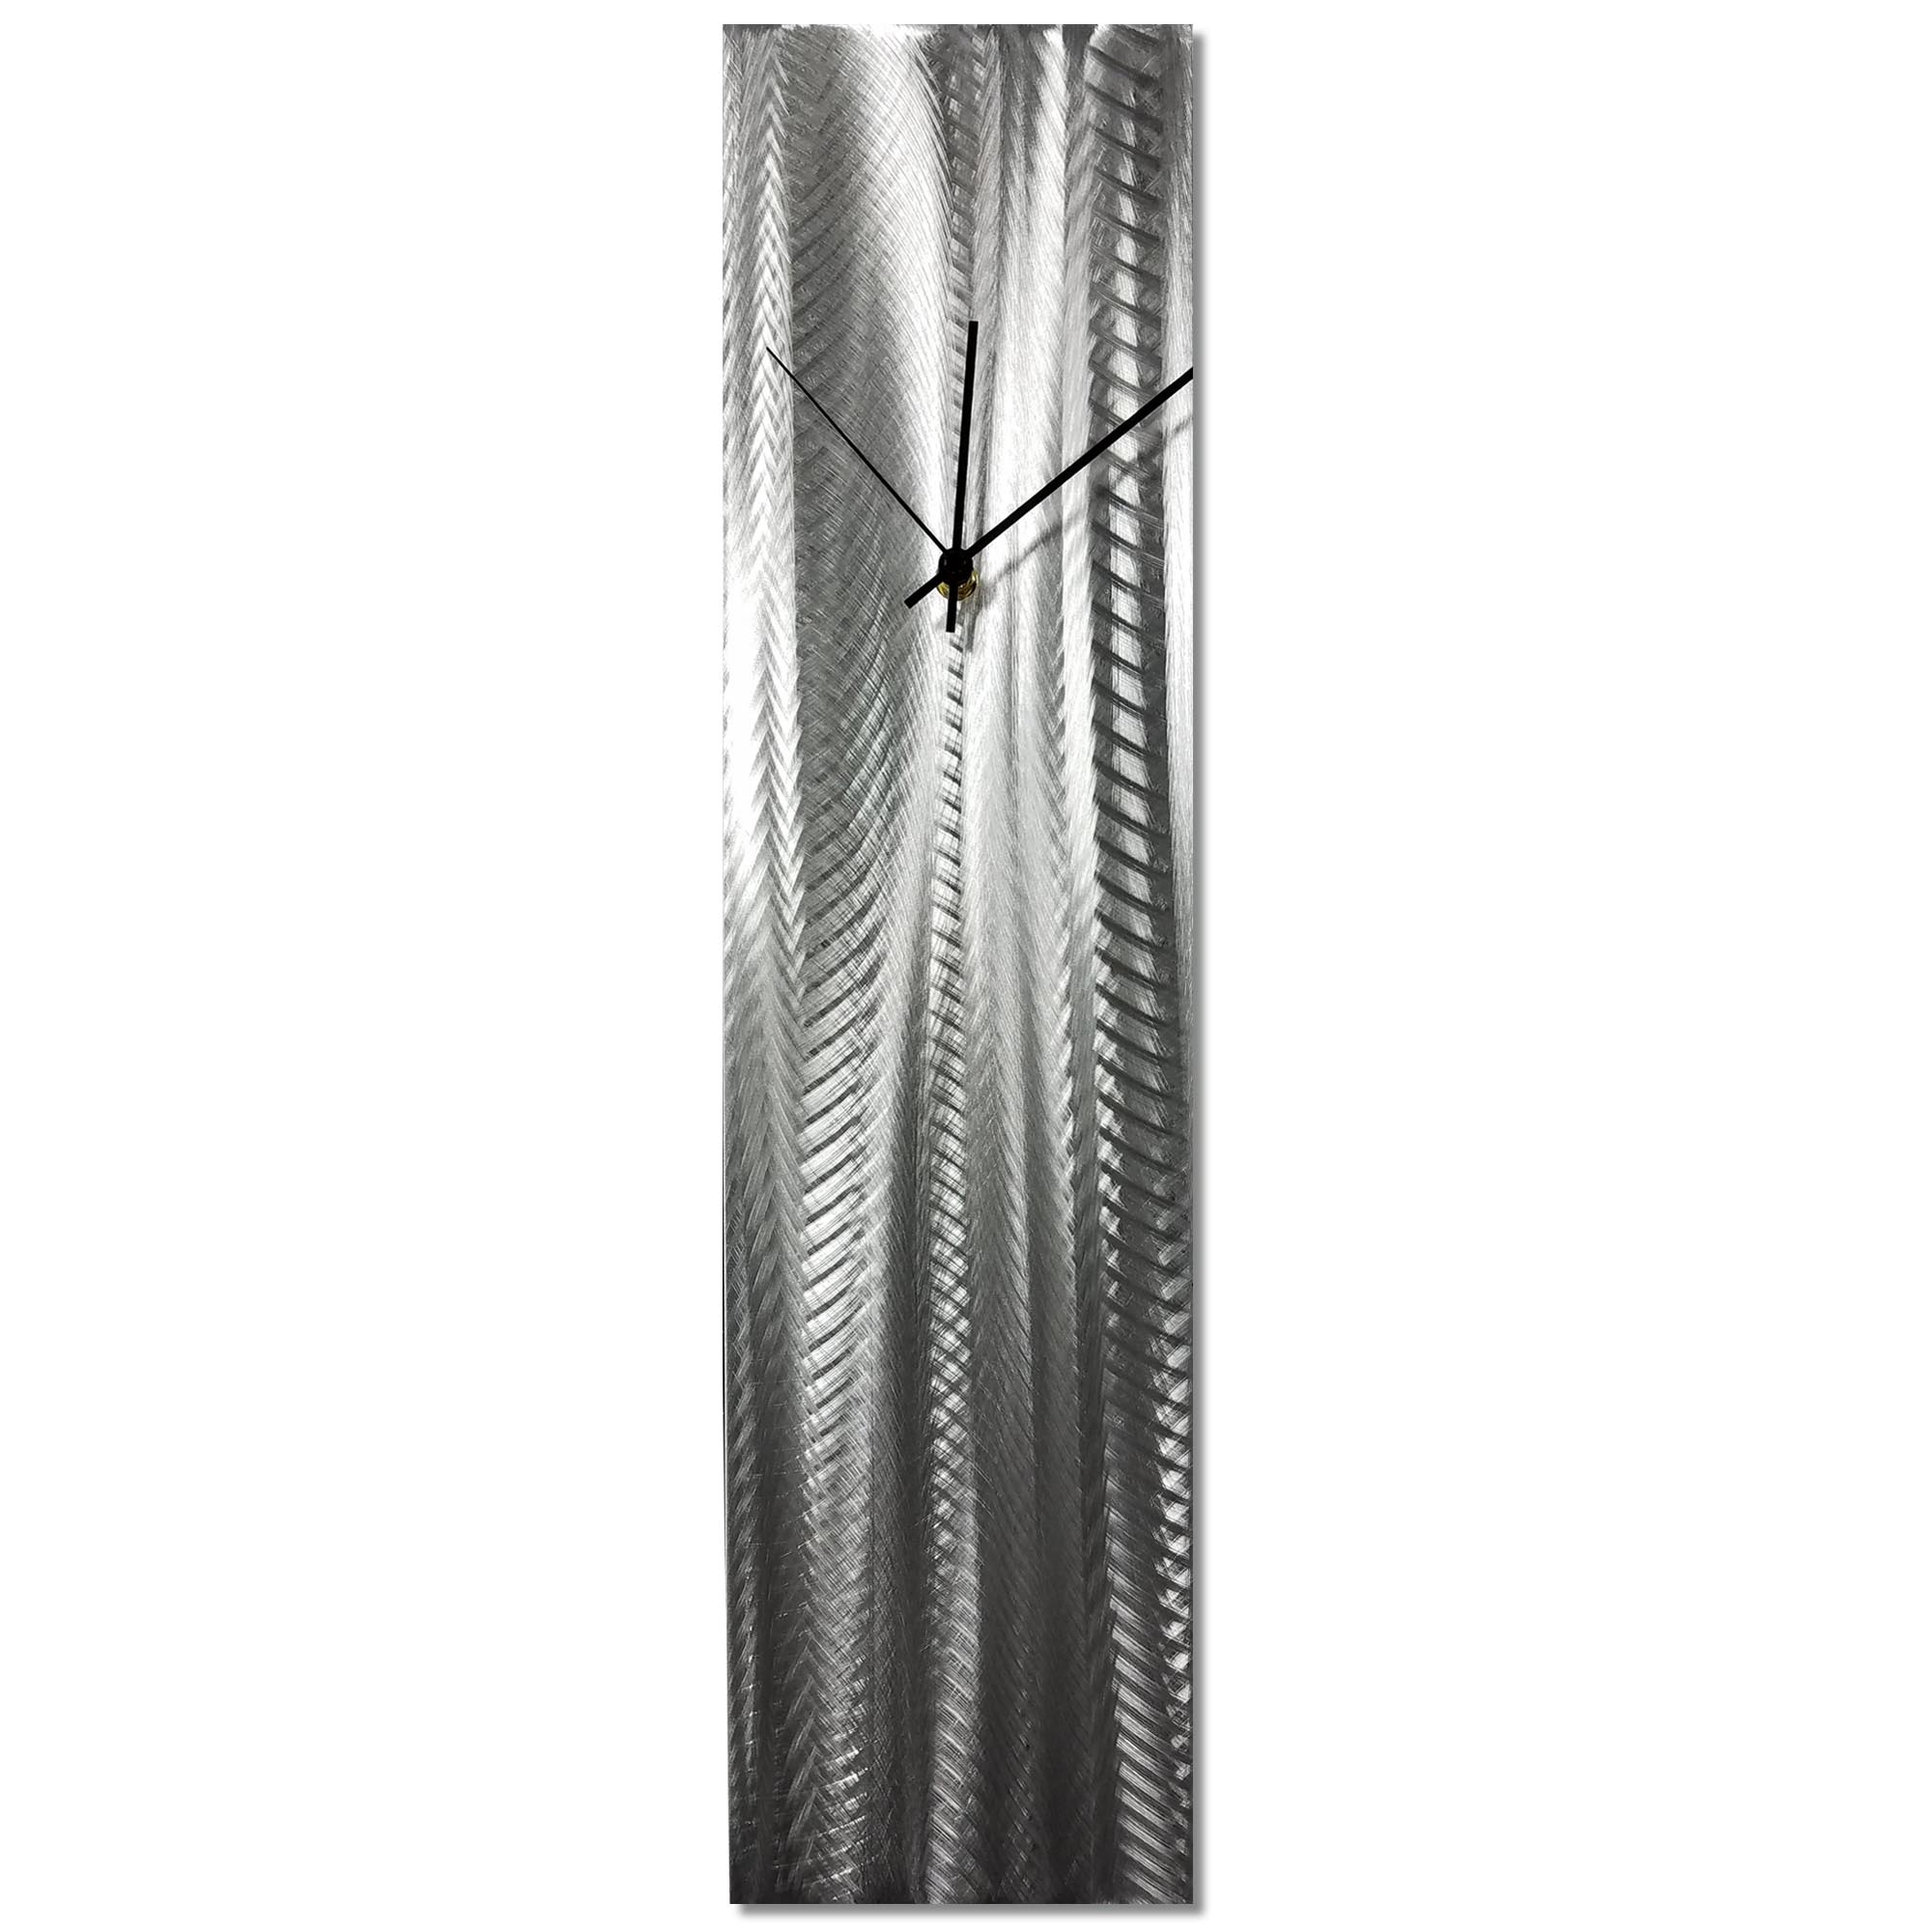 Silver Lines Clock 6x24in. Natural Aluminum